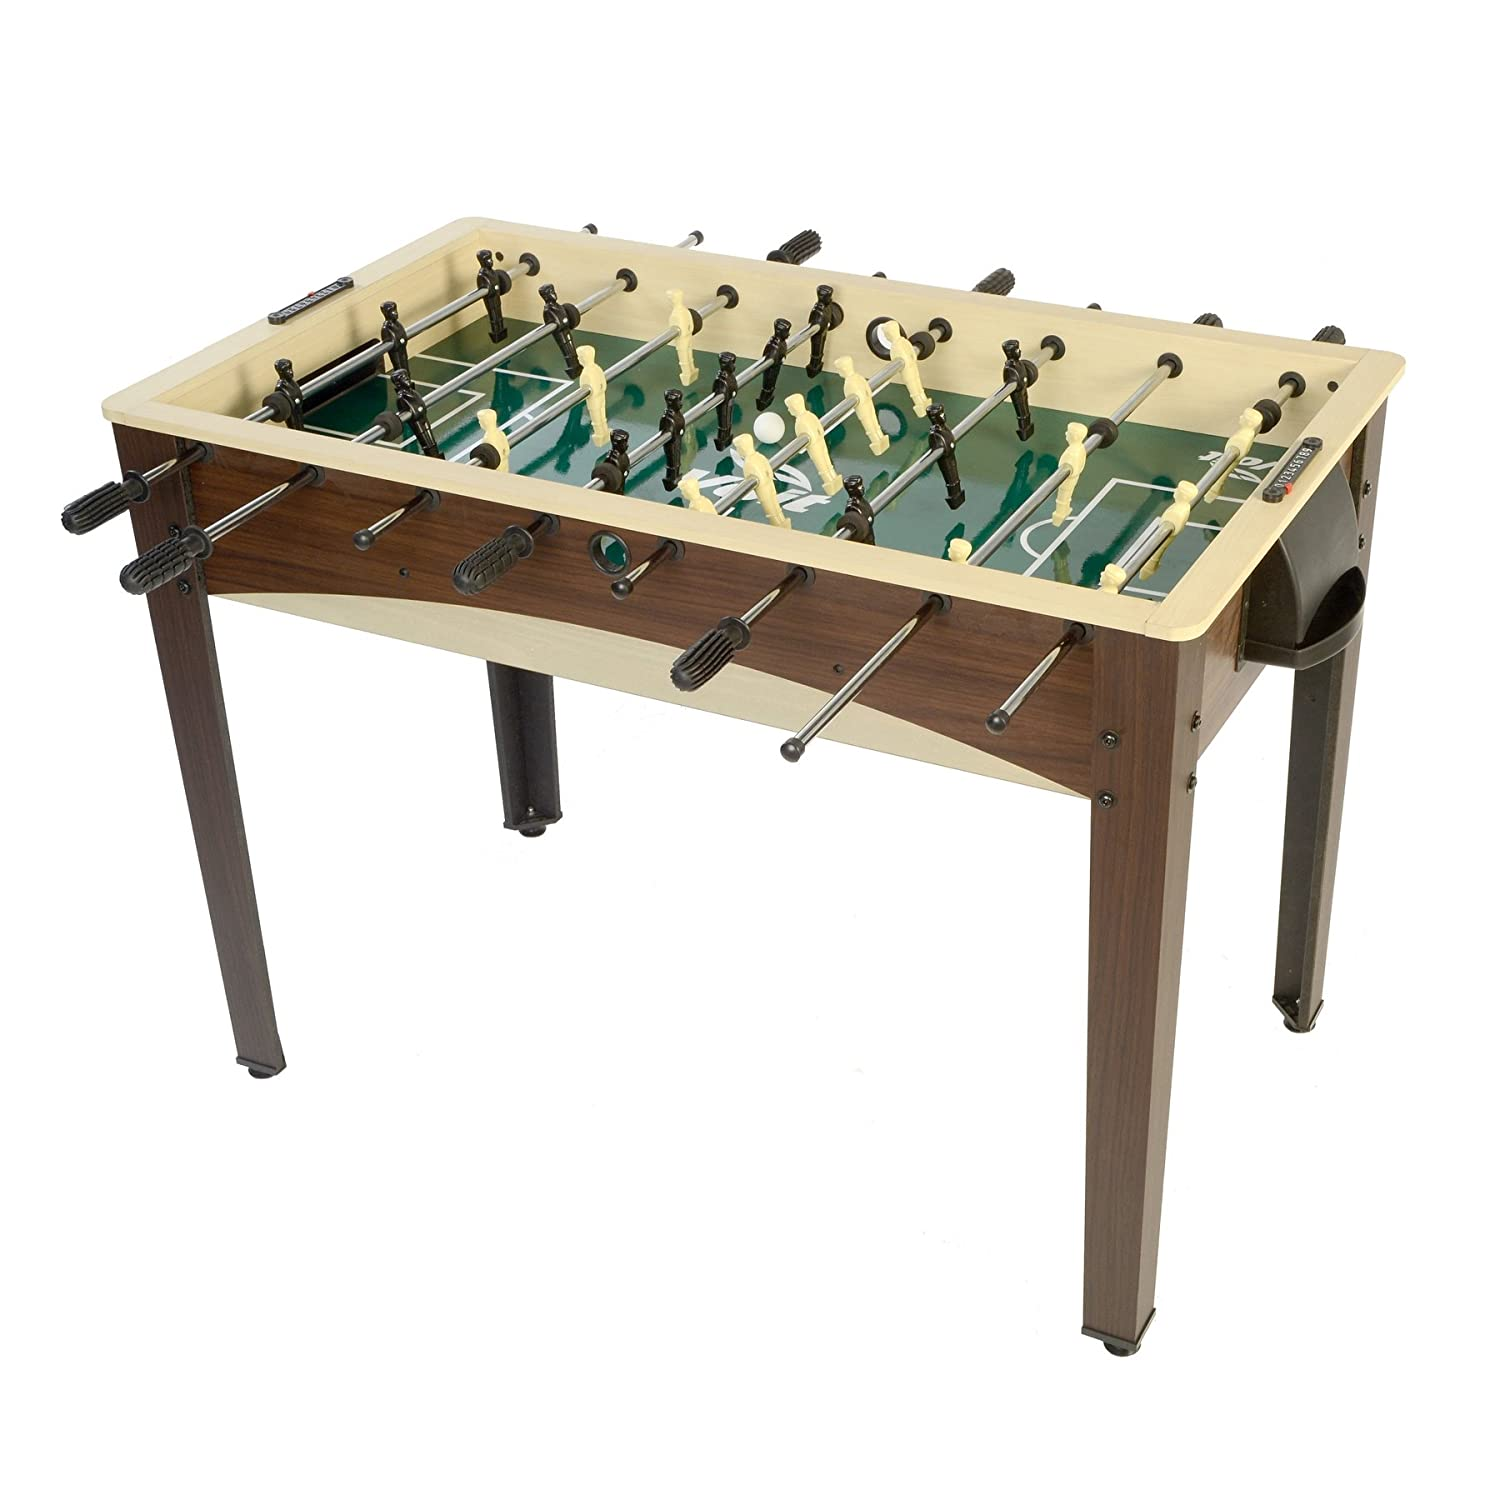 Amazon Voit Free Kick Foosball Table 48 Inch Sports